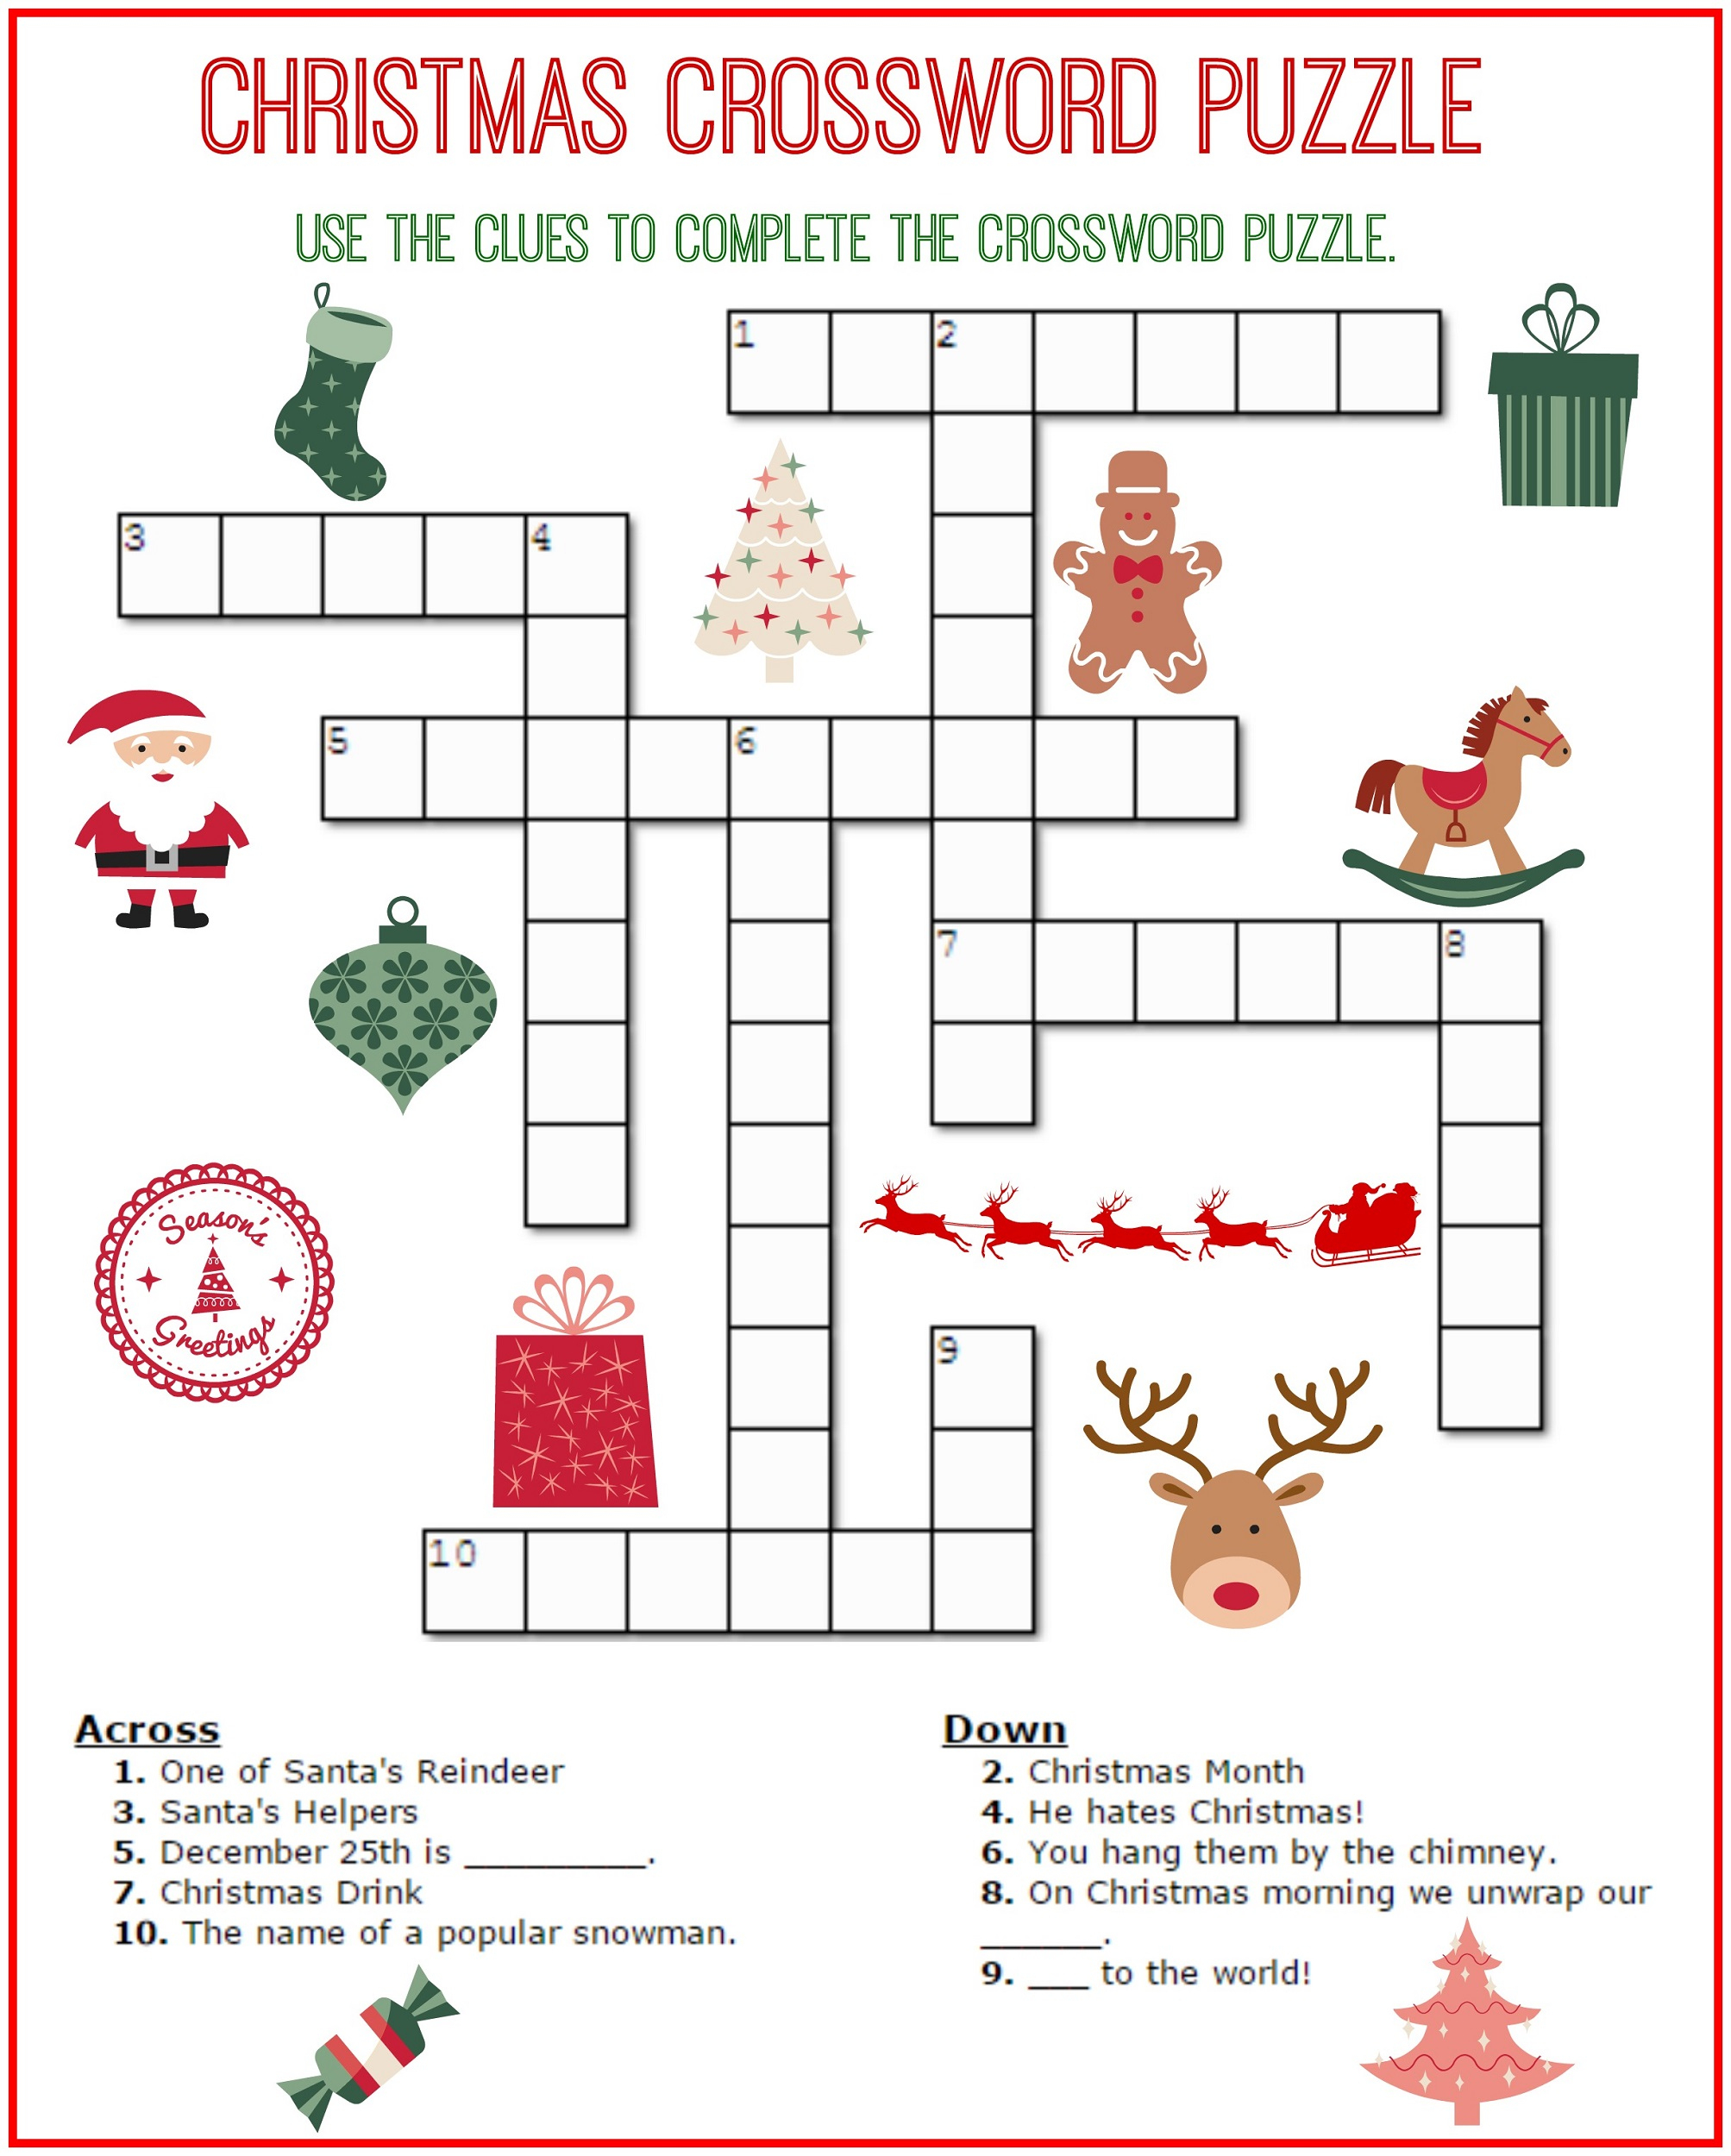 Crossword Puzzle Kids Printable 2017 | Kiddo Shelter - Printable Elementary Crossword Puzzles